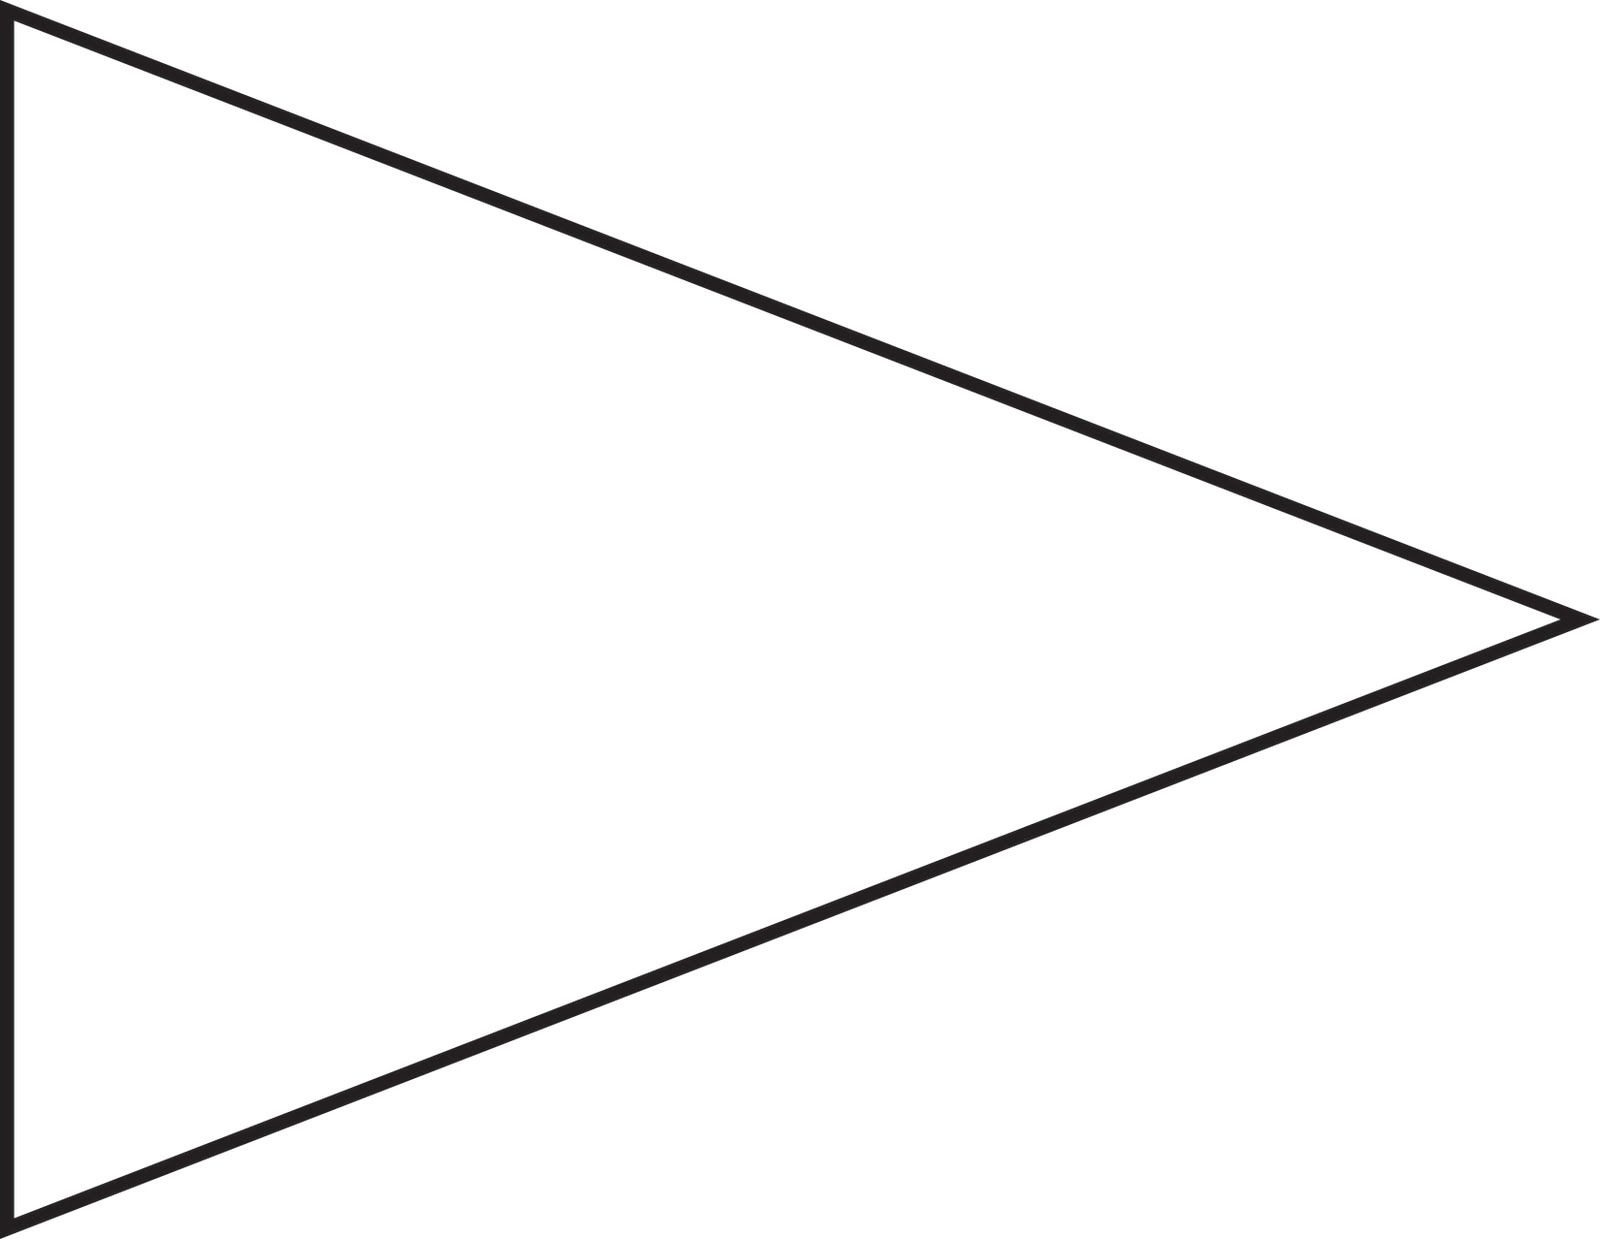 png royalty free stock Pennant clipart. Pin triangle flag outline.